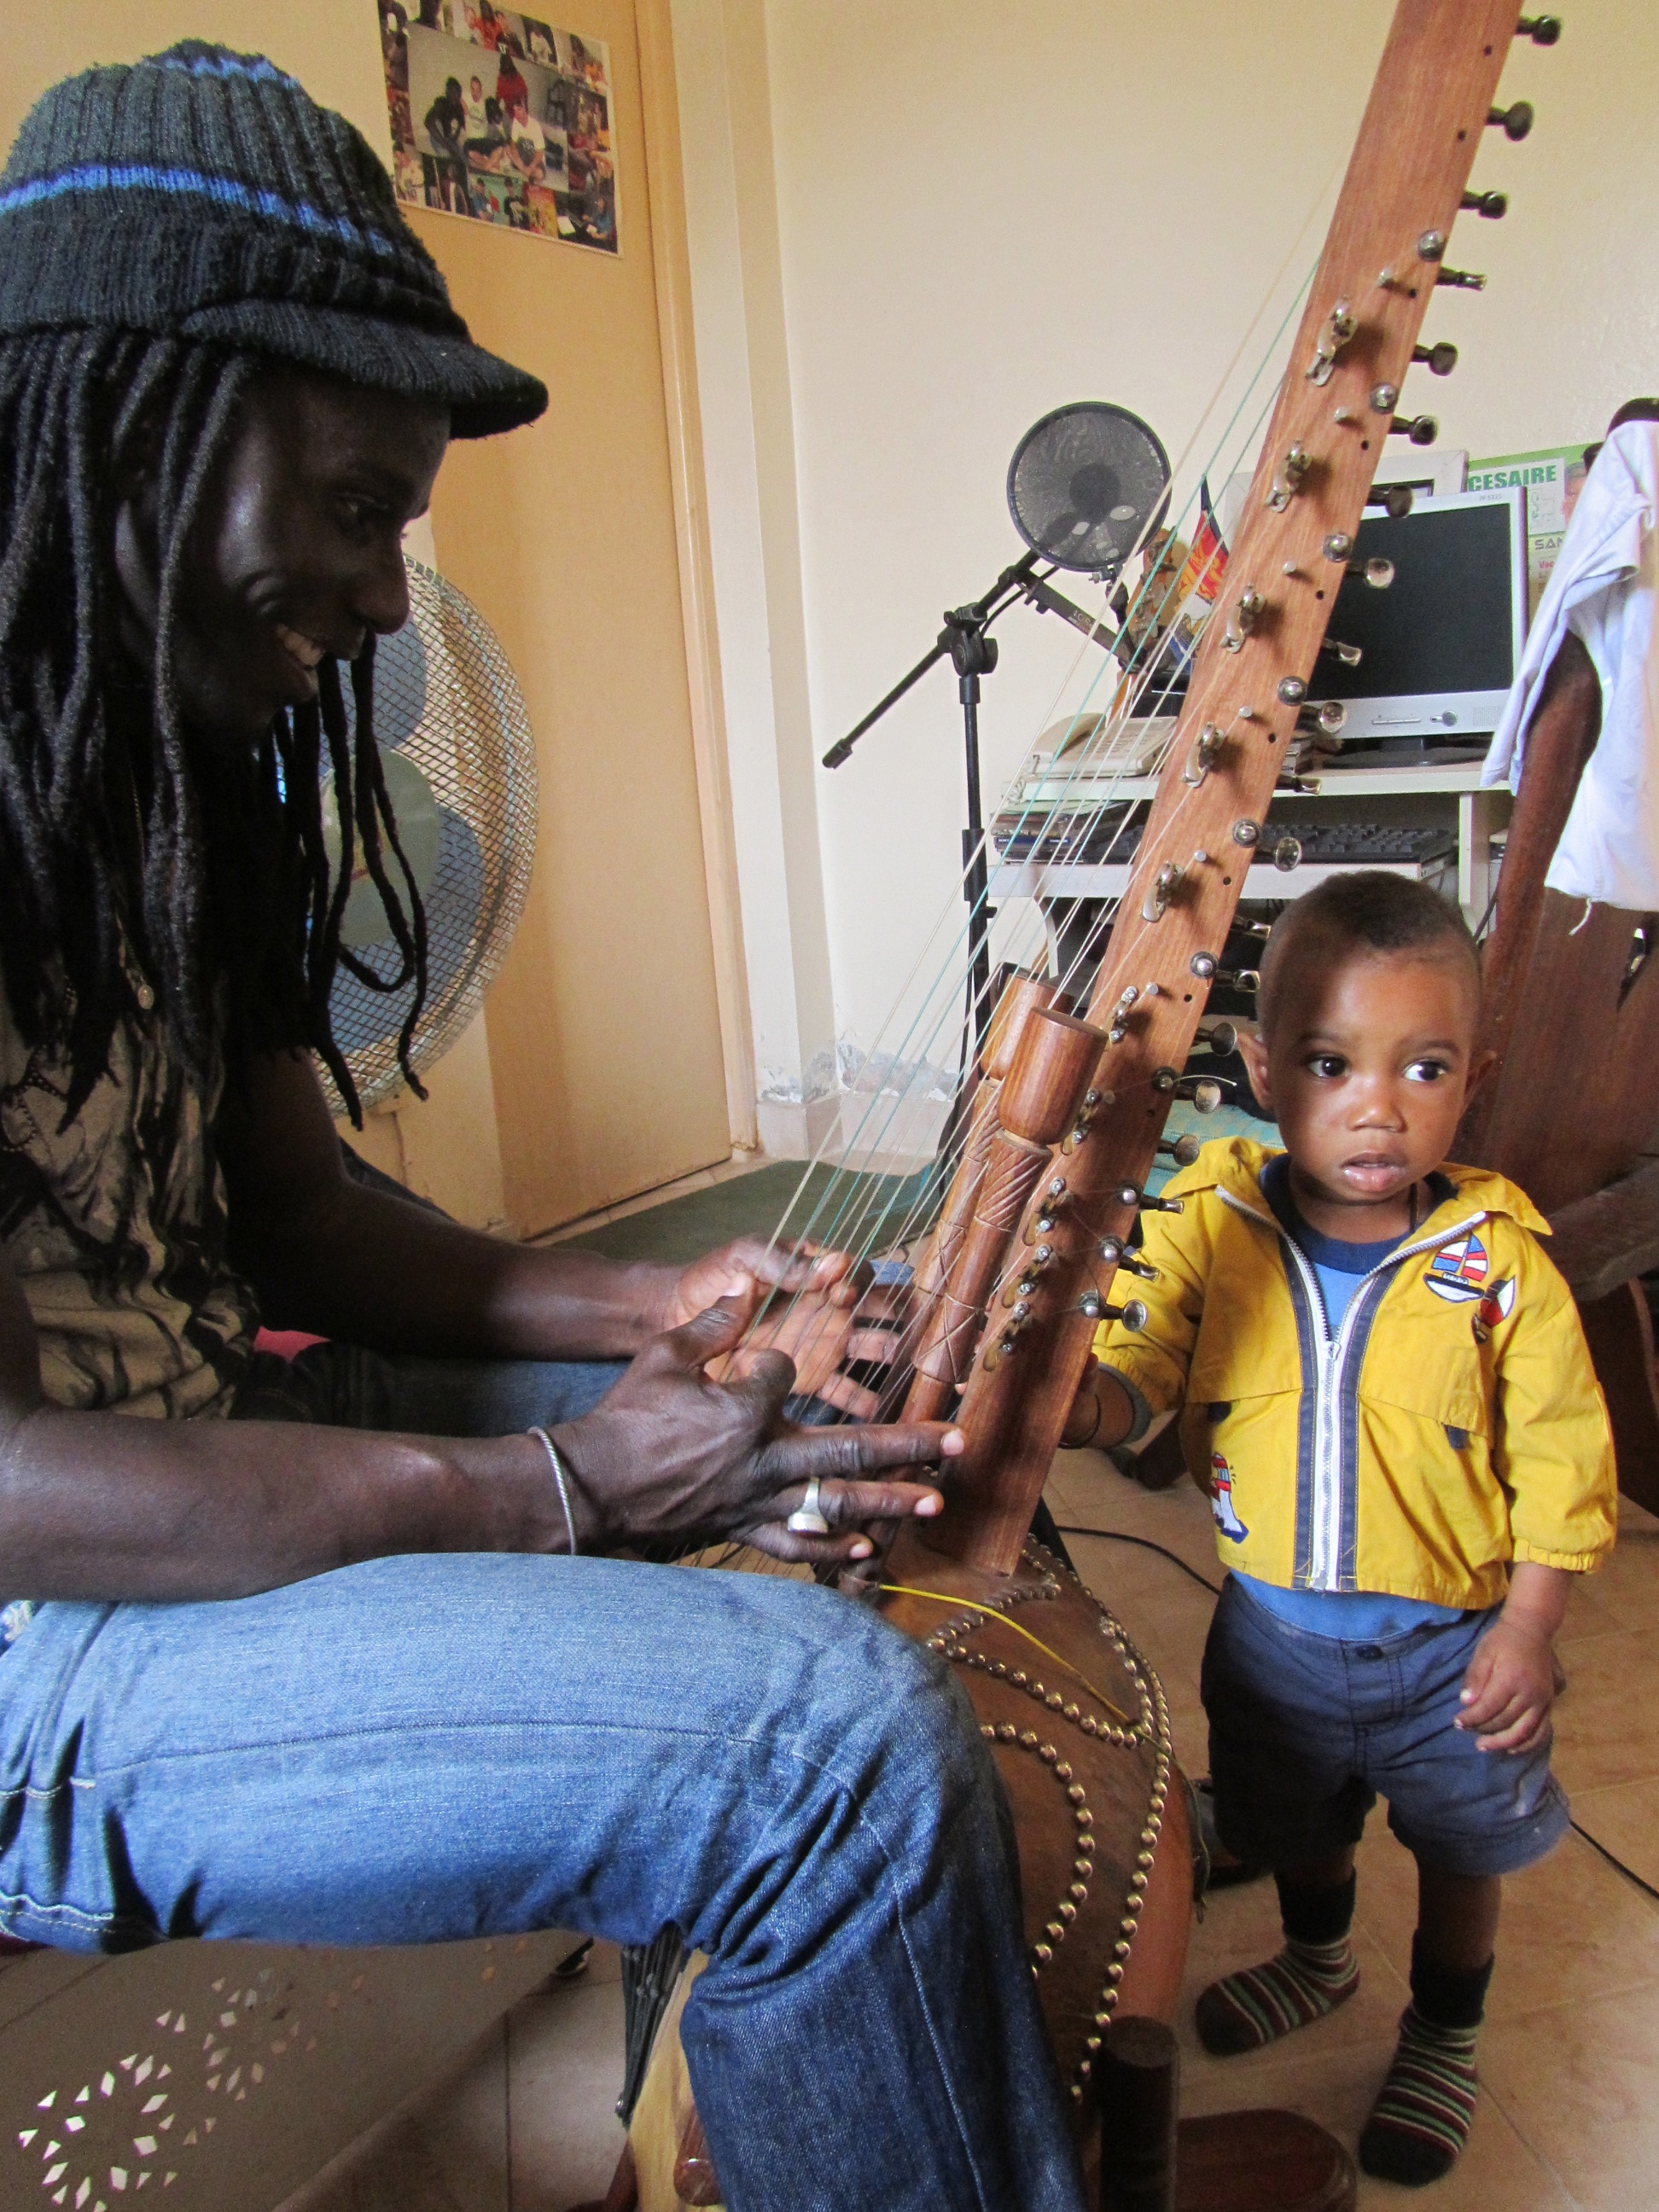 Edou (my kora teacher) and his nephew, Mali, future korist